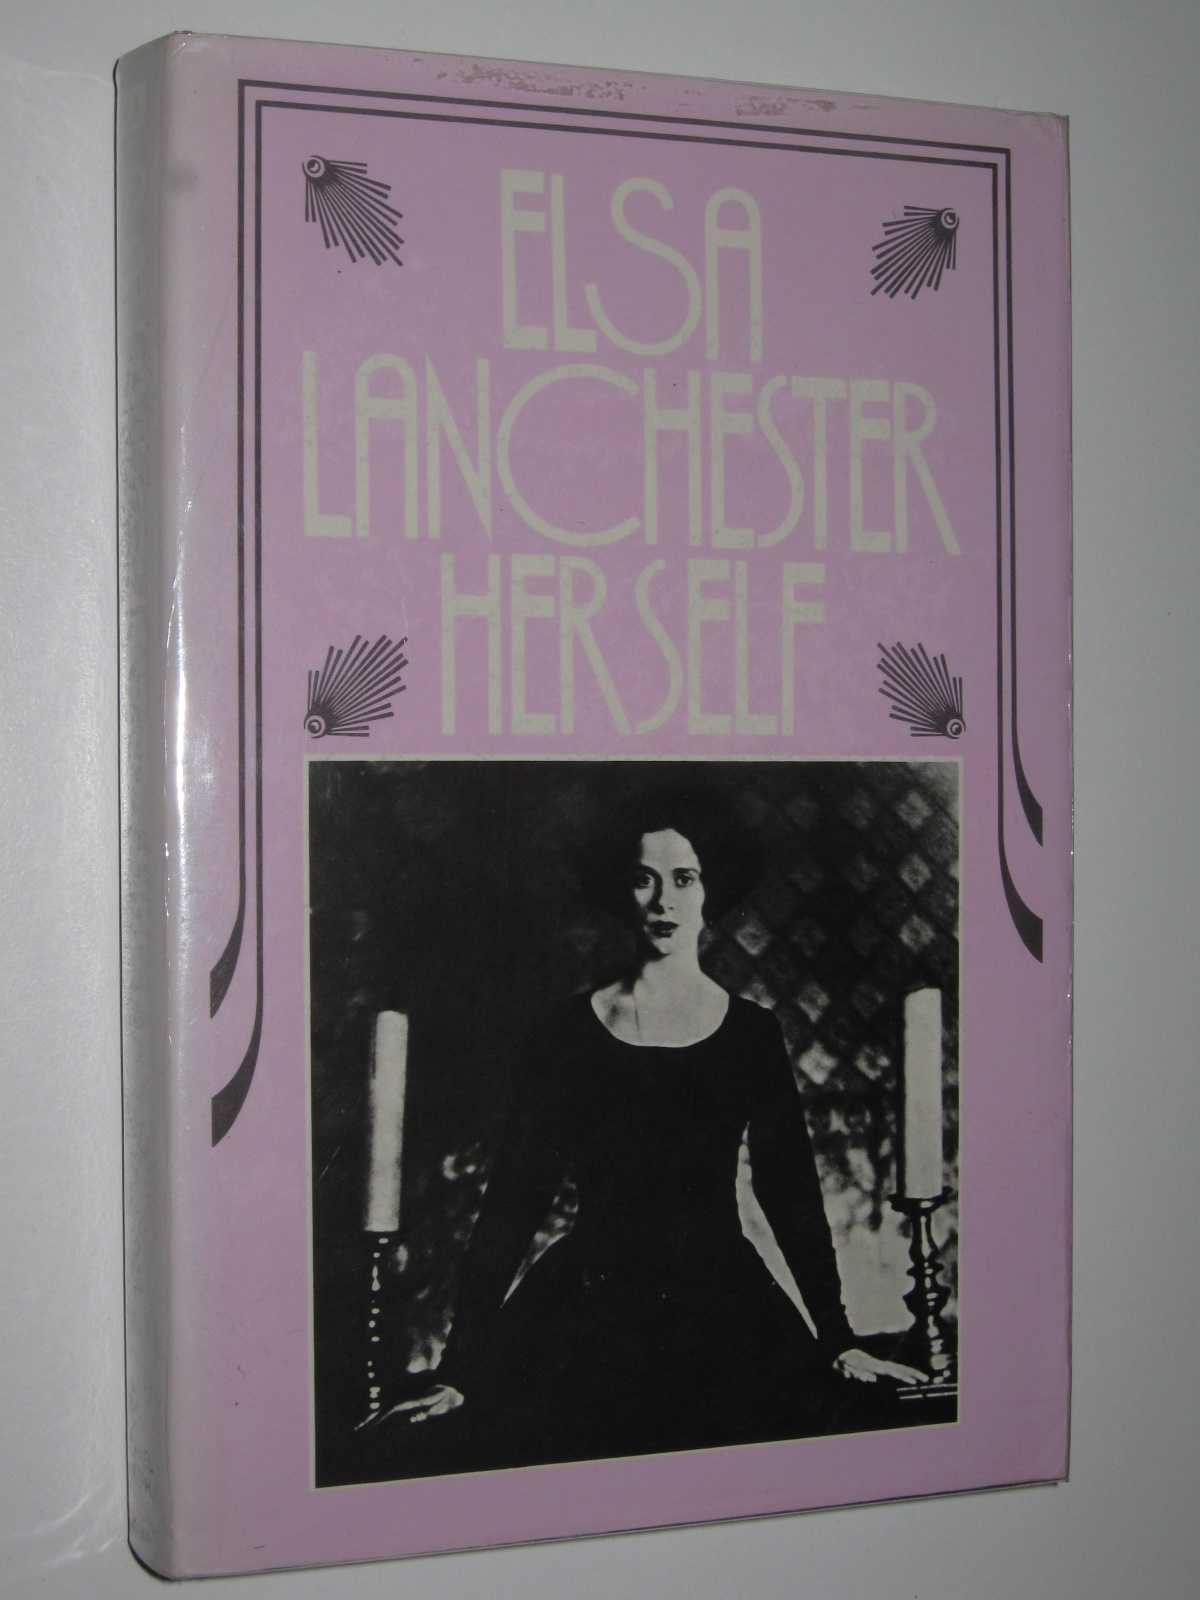 Elsa Lanchester, Herself, Lanchester, Elsa